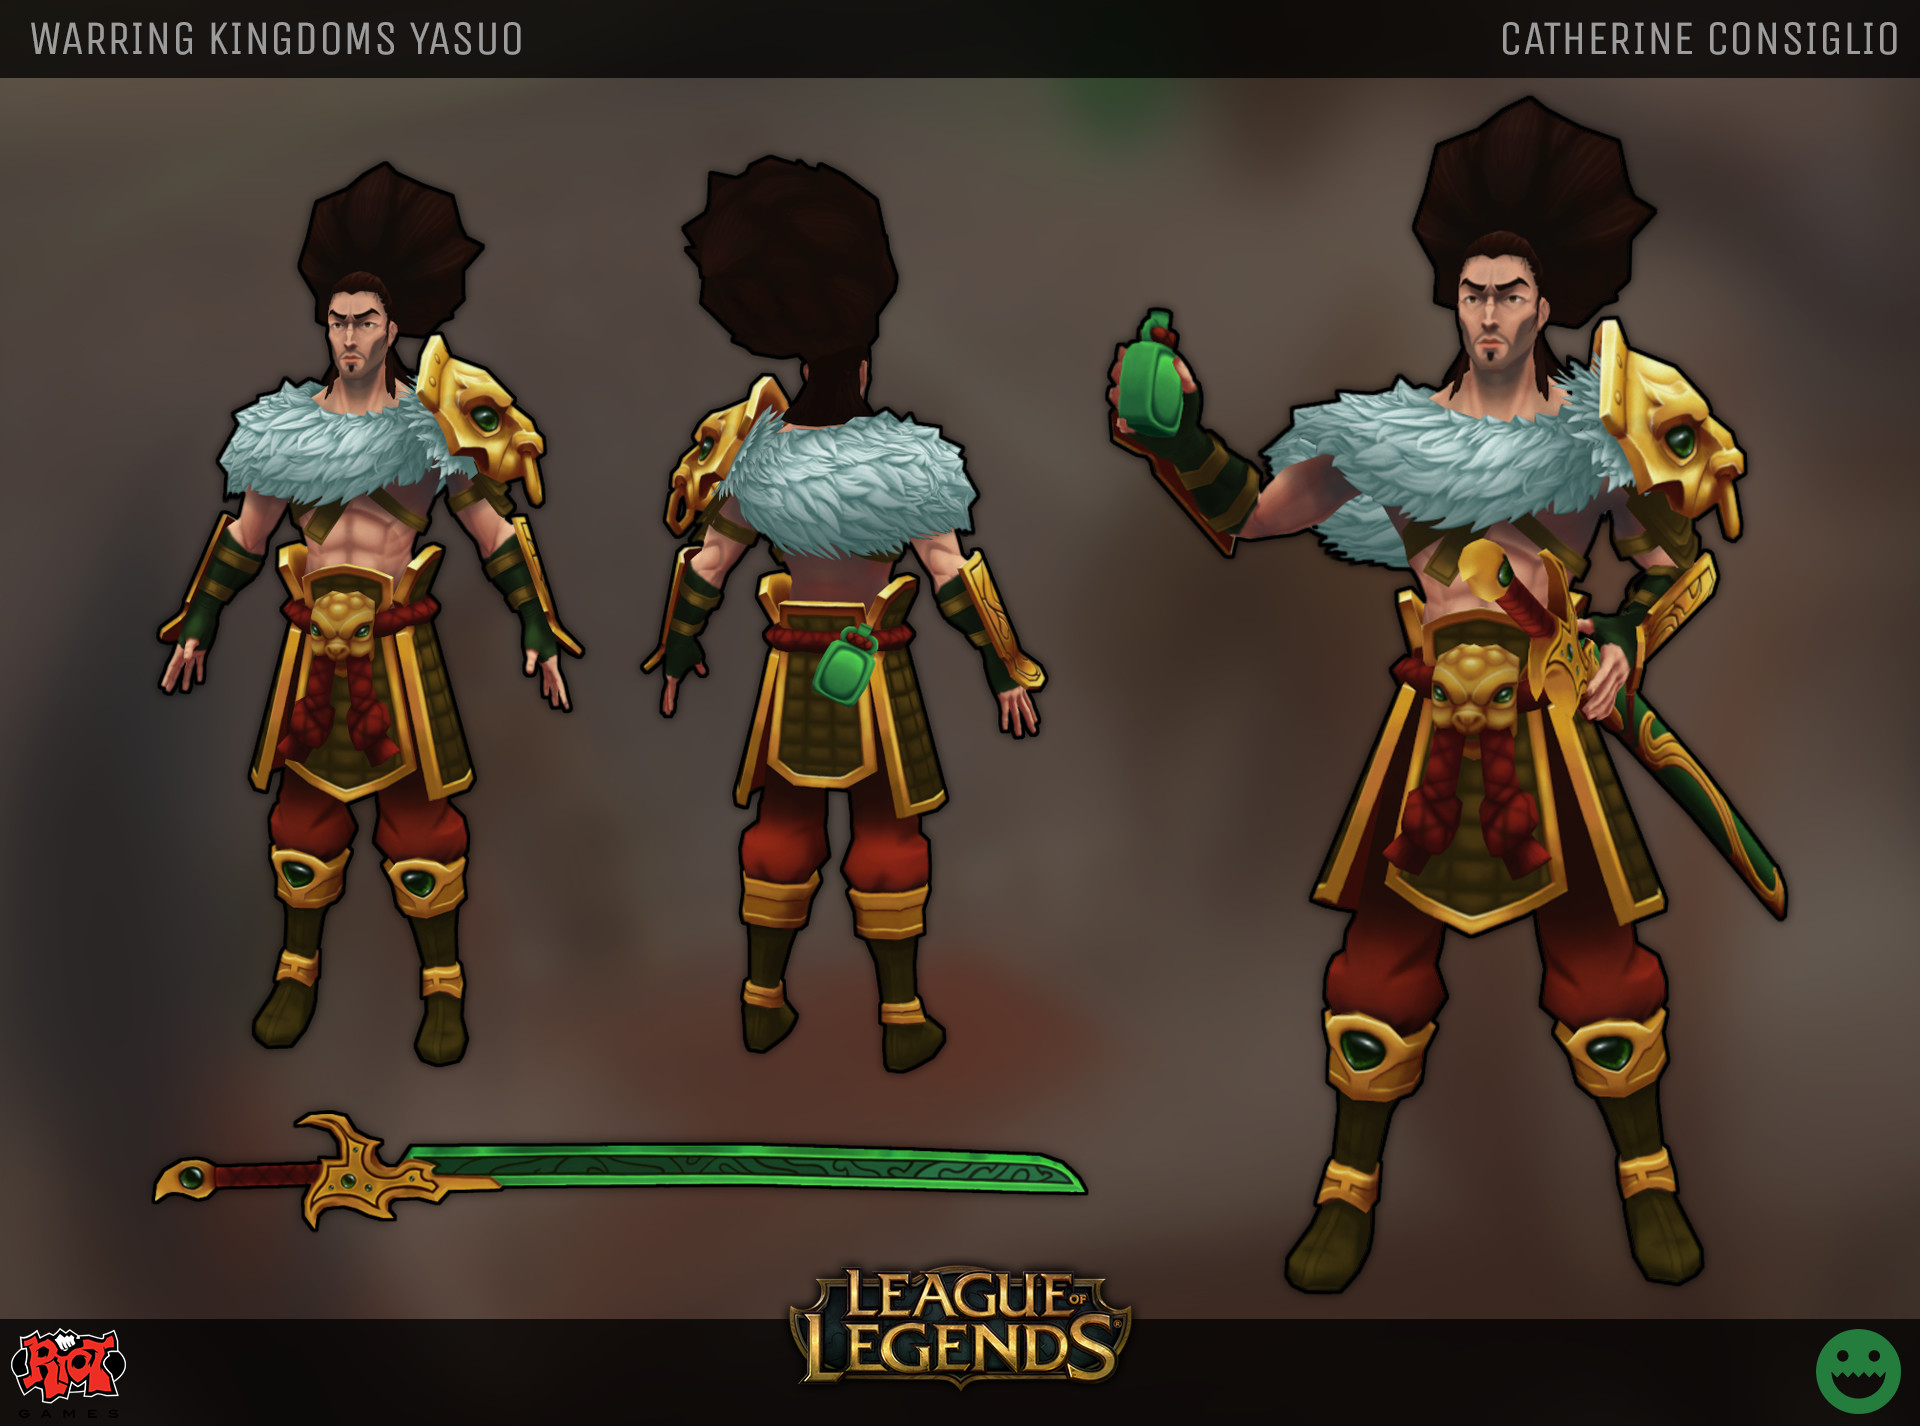 Catherine consiglio catherine consiglio warring kingdoms yasuo riot polycount challenge p1